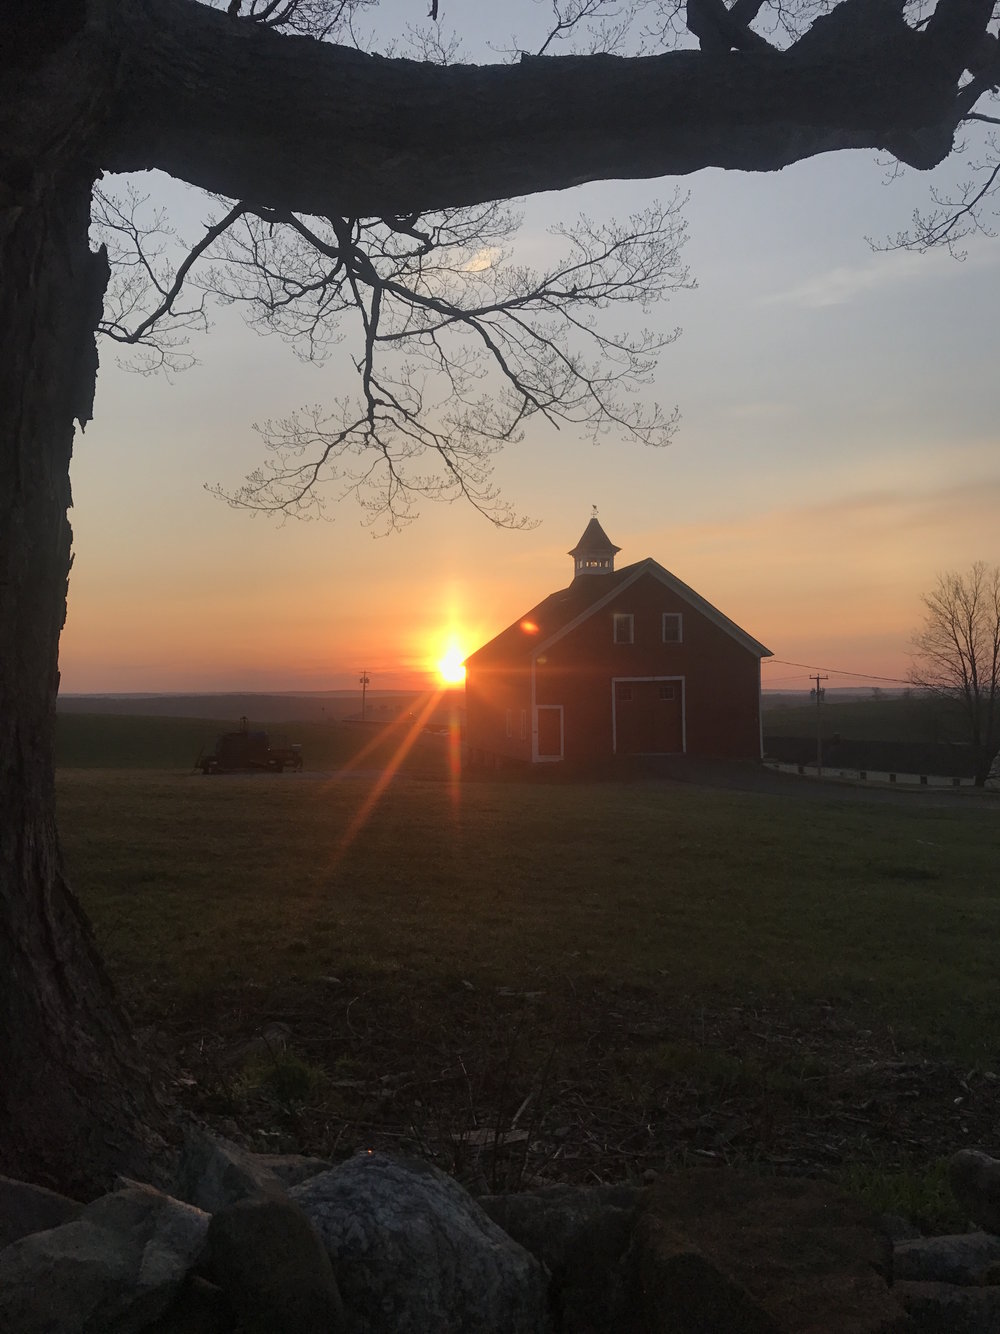 The sunrise over UConn's Horsebarn Hill at 6:20 a.m. on Wednesday, April 12, 2017. The author stayed up all night to finish a photography portfolio assignment, heading home just in time for the day's sunrise. (Francesca Colturi/The Daily Campus)